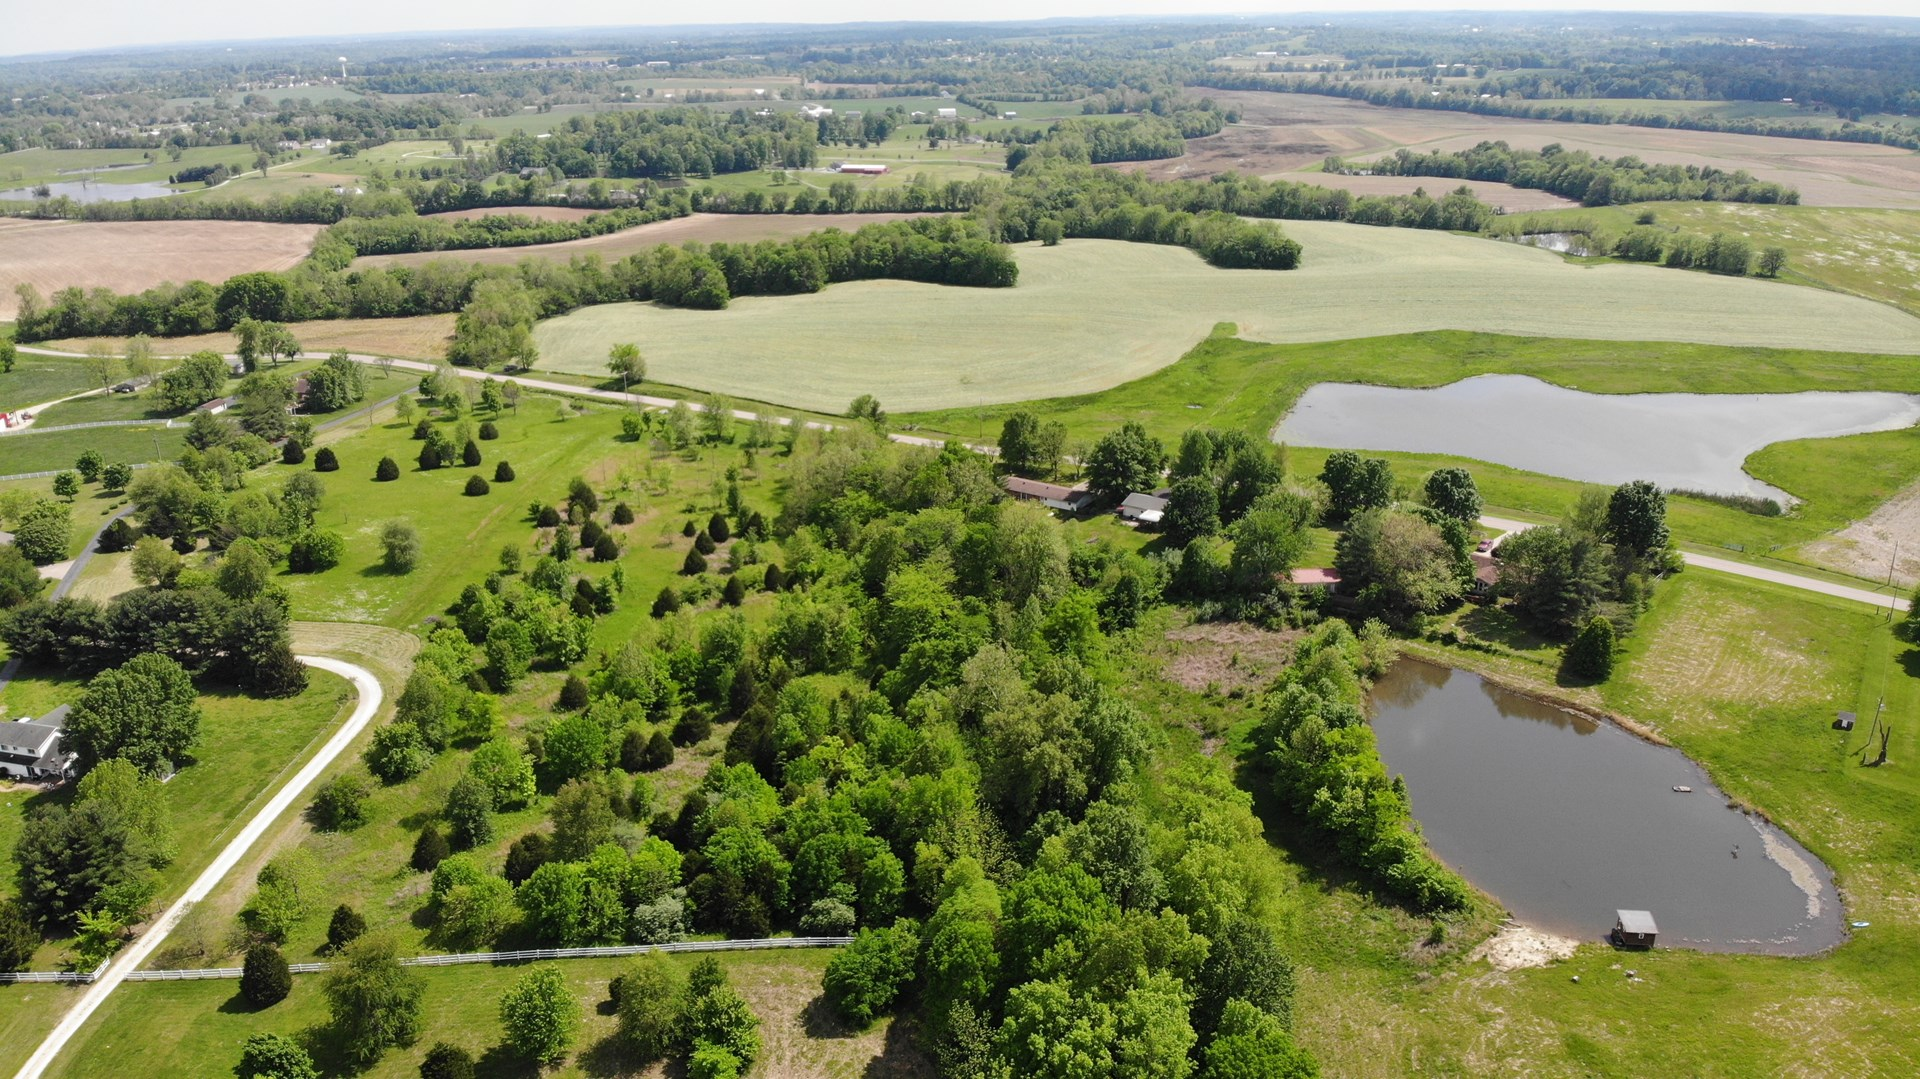 Residential, Equine, Pasture Land For Sale Jackson, MO.